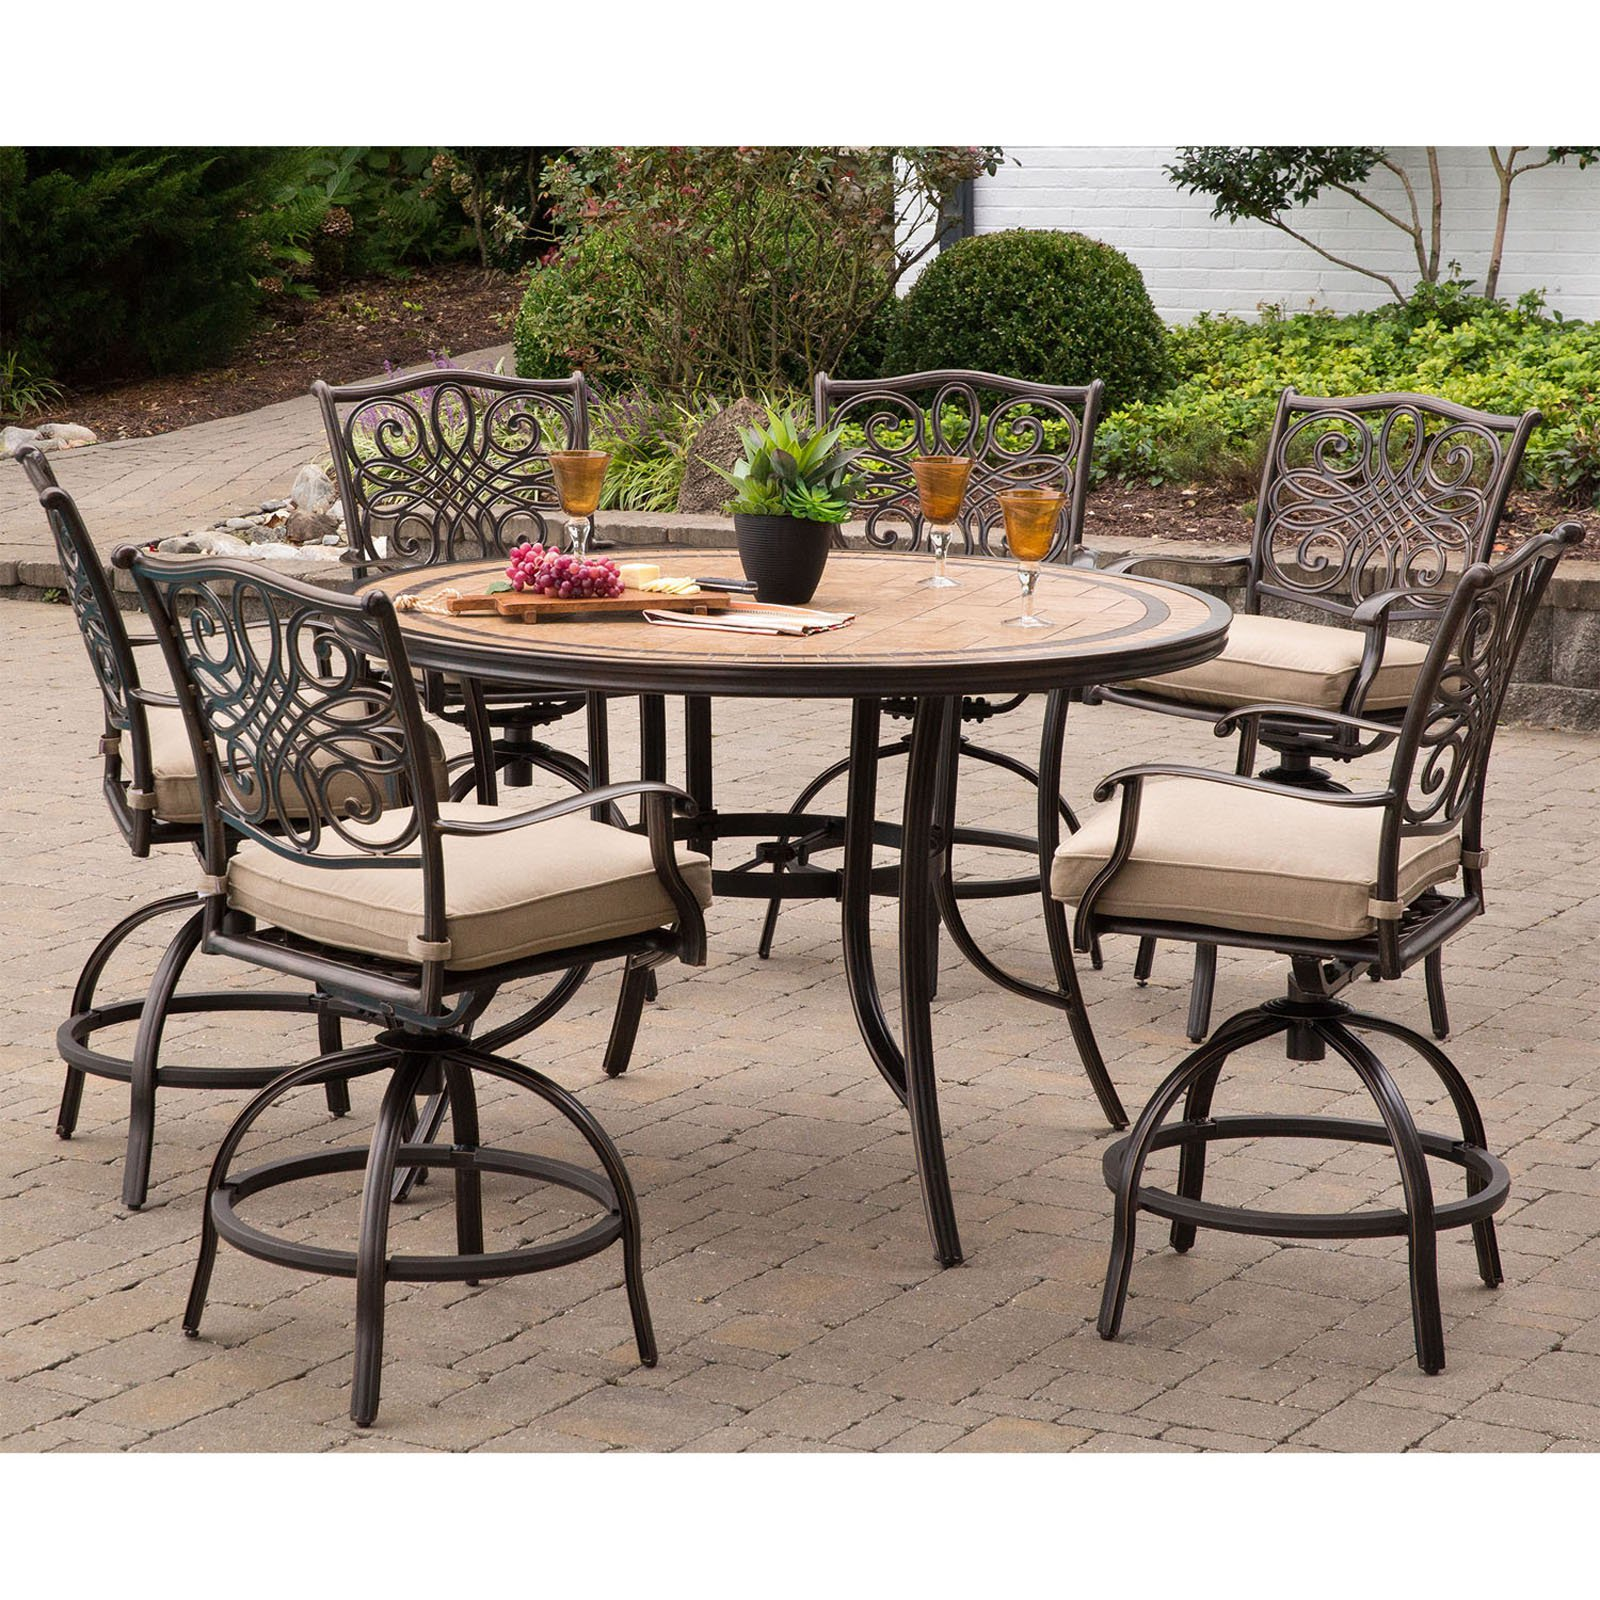 Hanover Monaco 7-Piece Outdoor High-Dining Bar Set with Tile-Top Table, Natural Oat